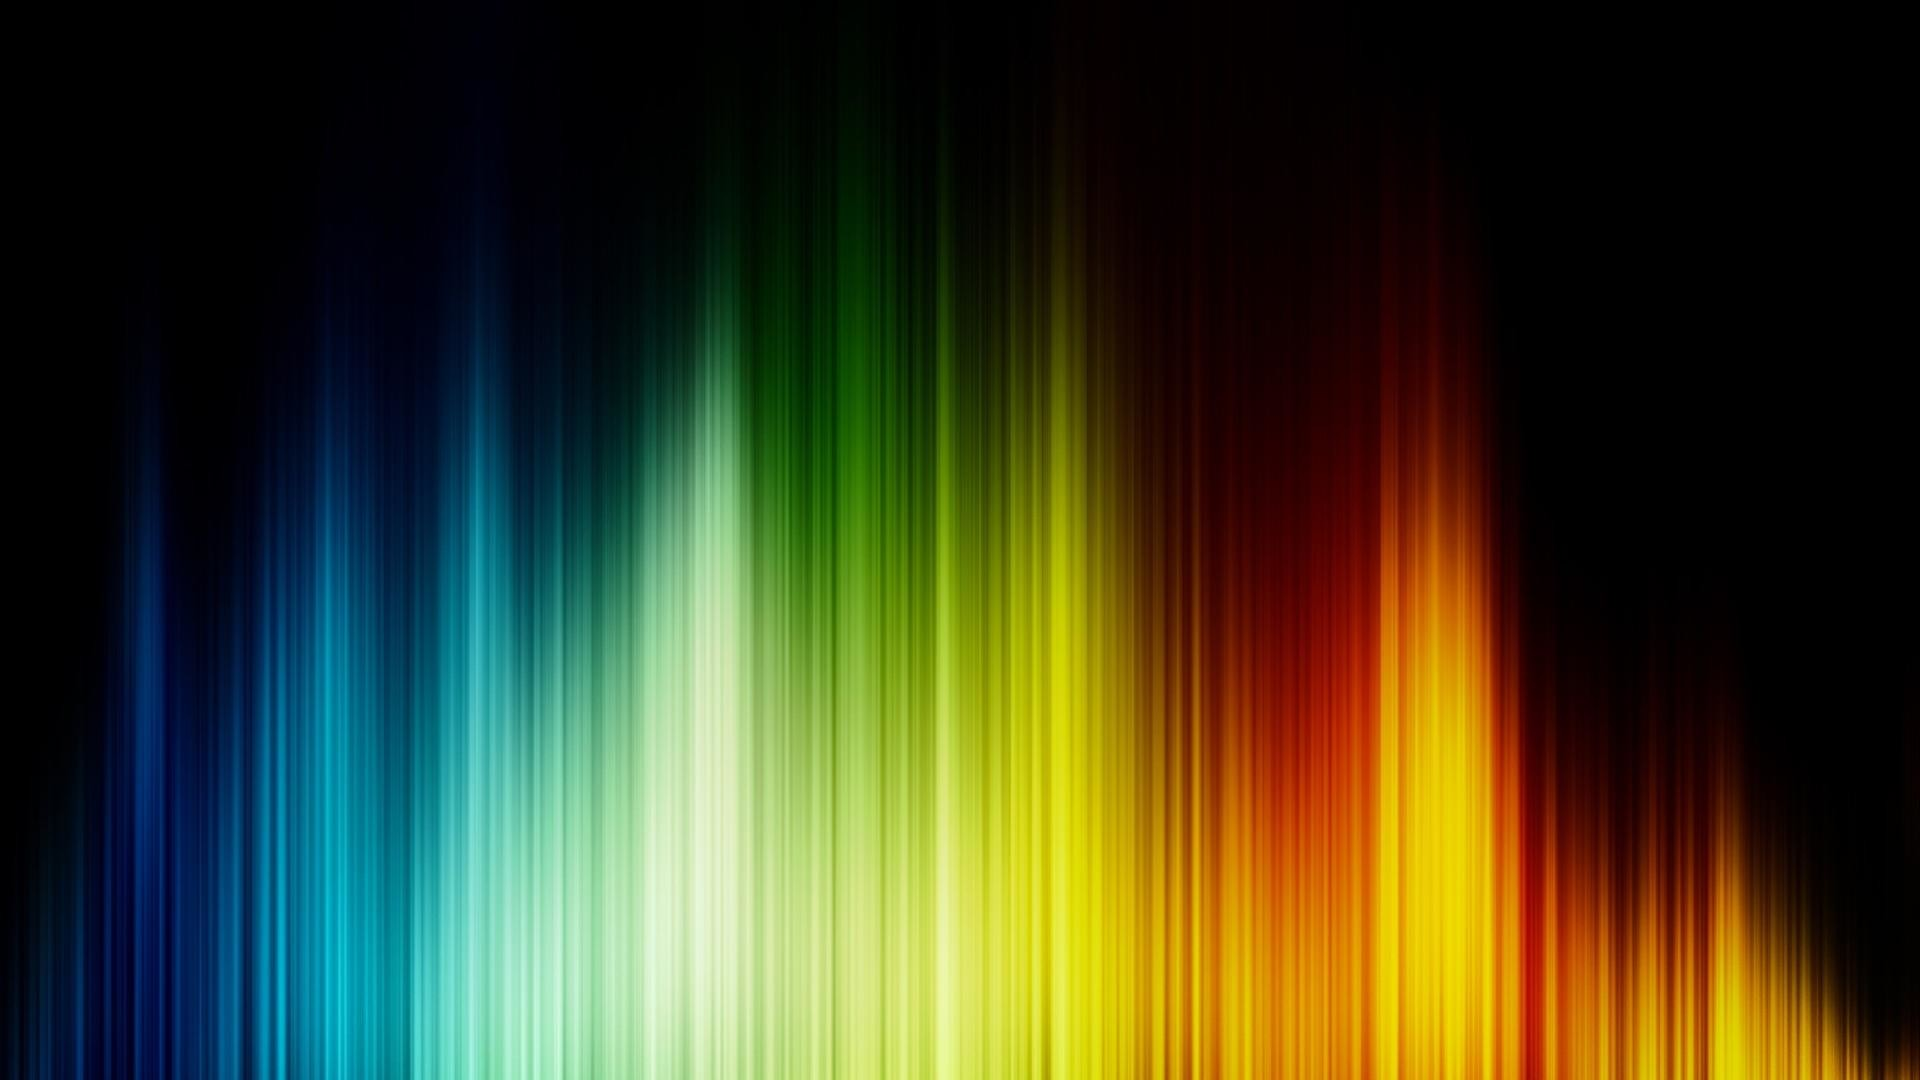 Abstract Colors Wallpapers Full Color Wallpaper Hd wallpape